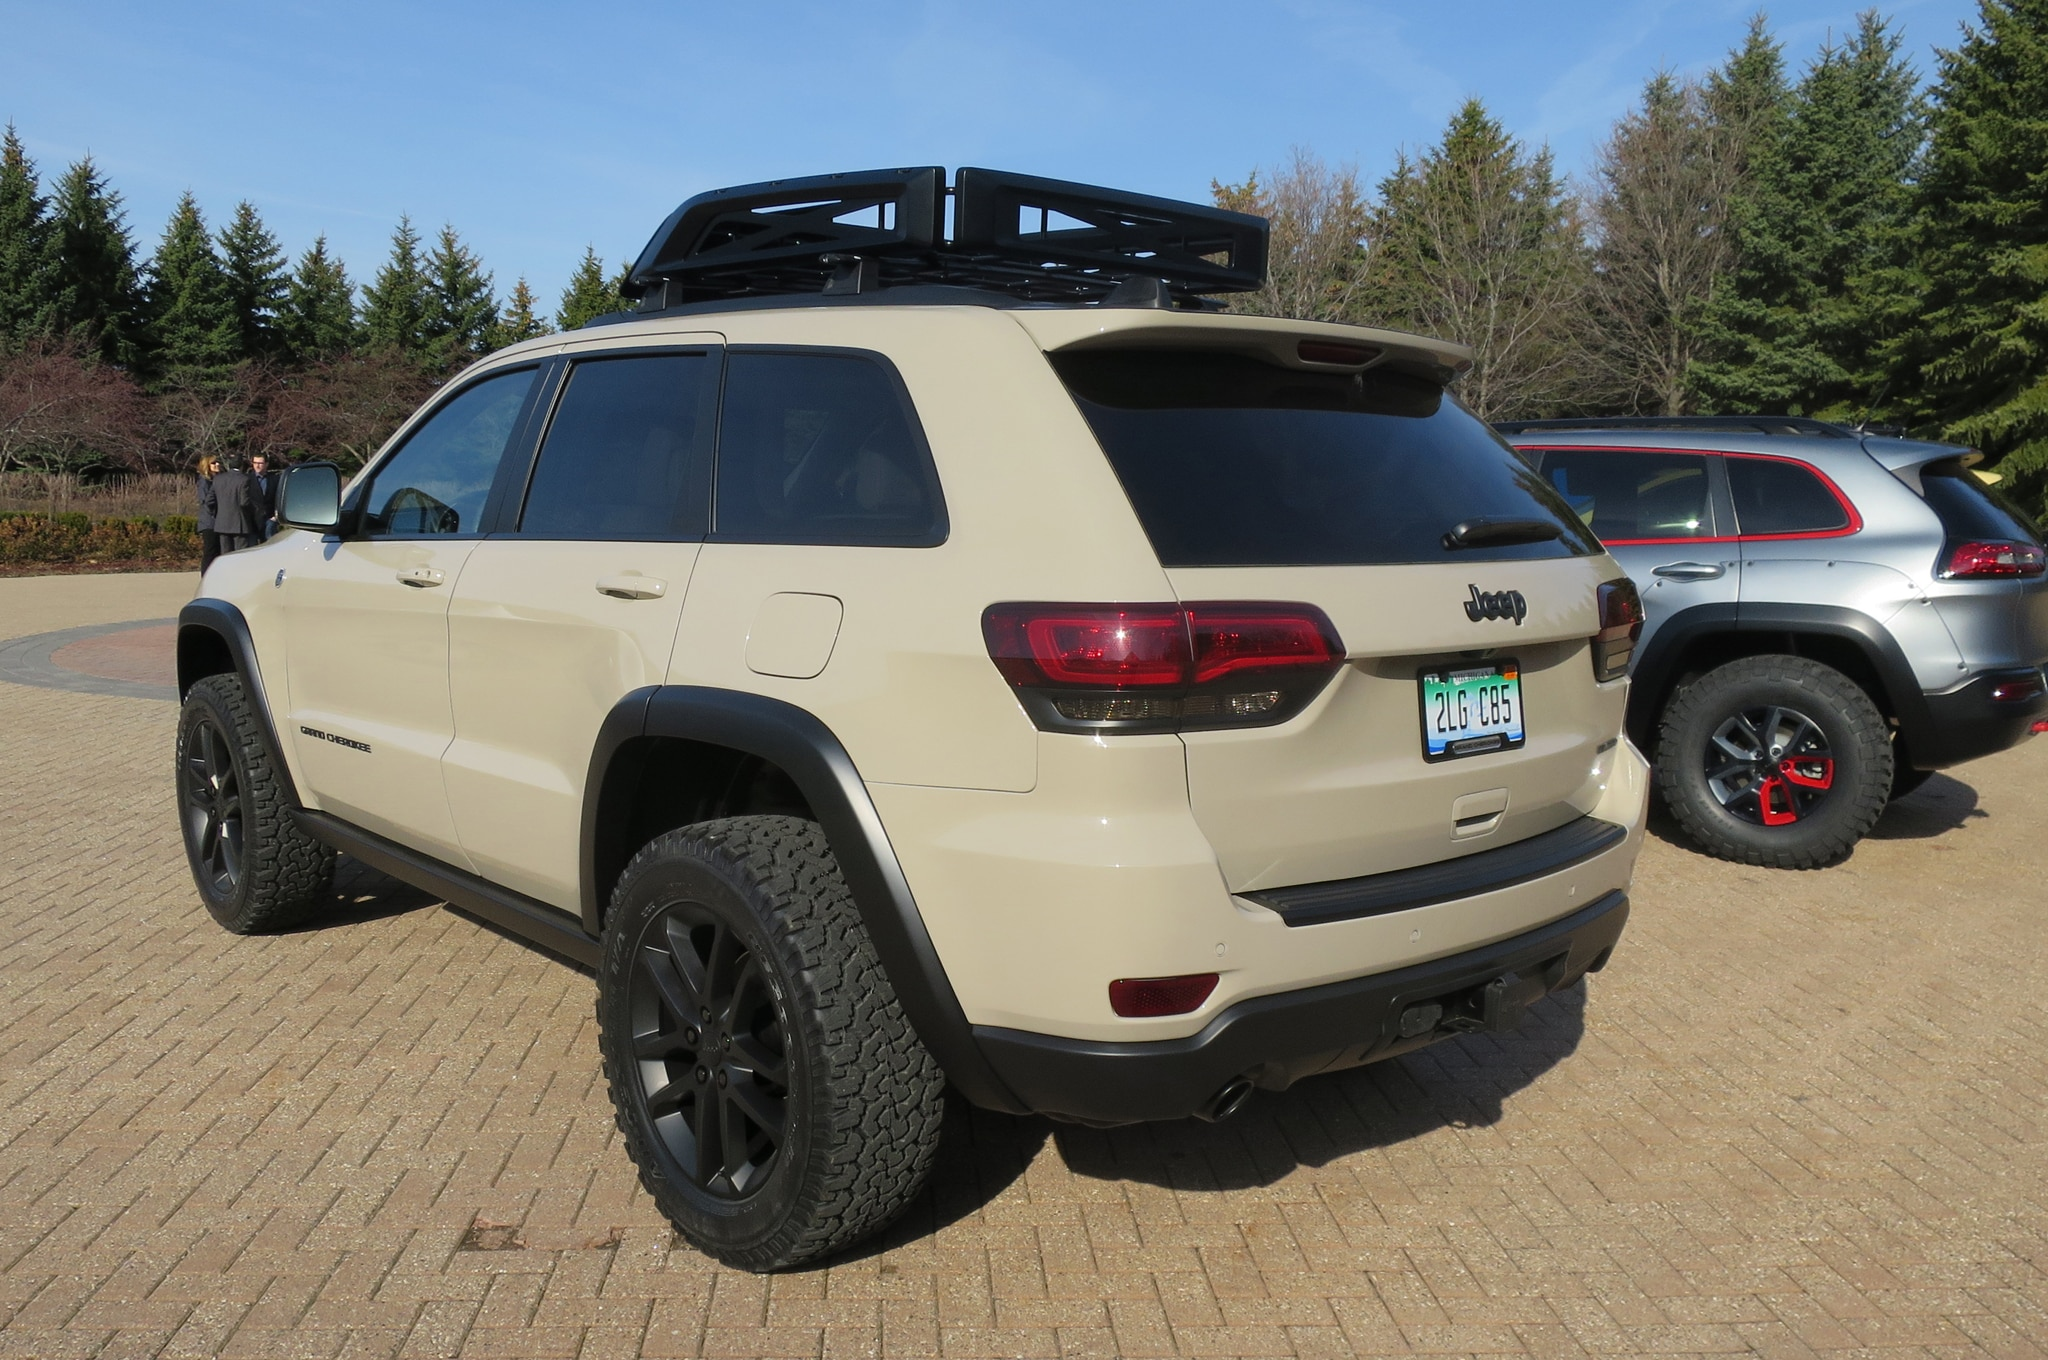 Jeep Grand Cherokee EcoDiesel Trail Warrior Concept rear three quarter